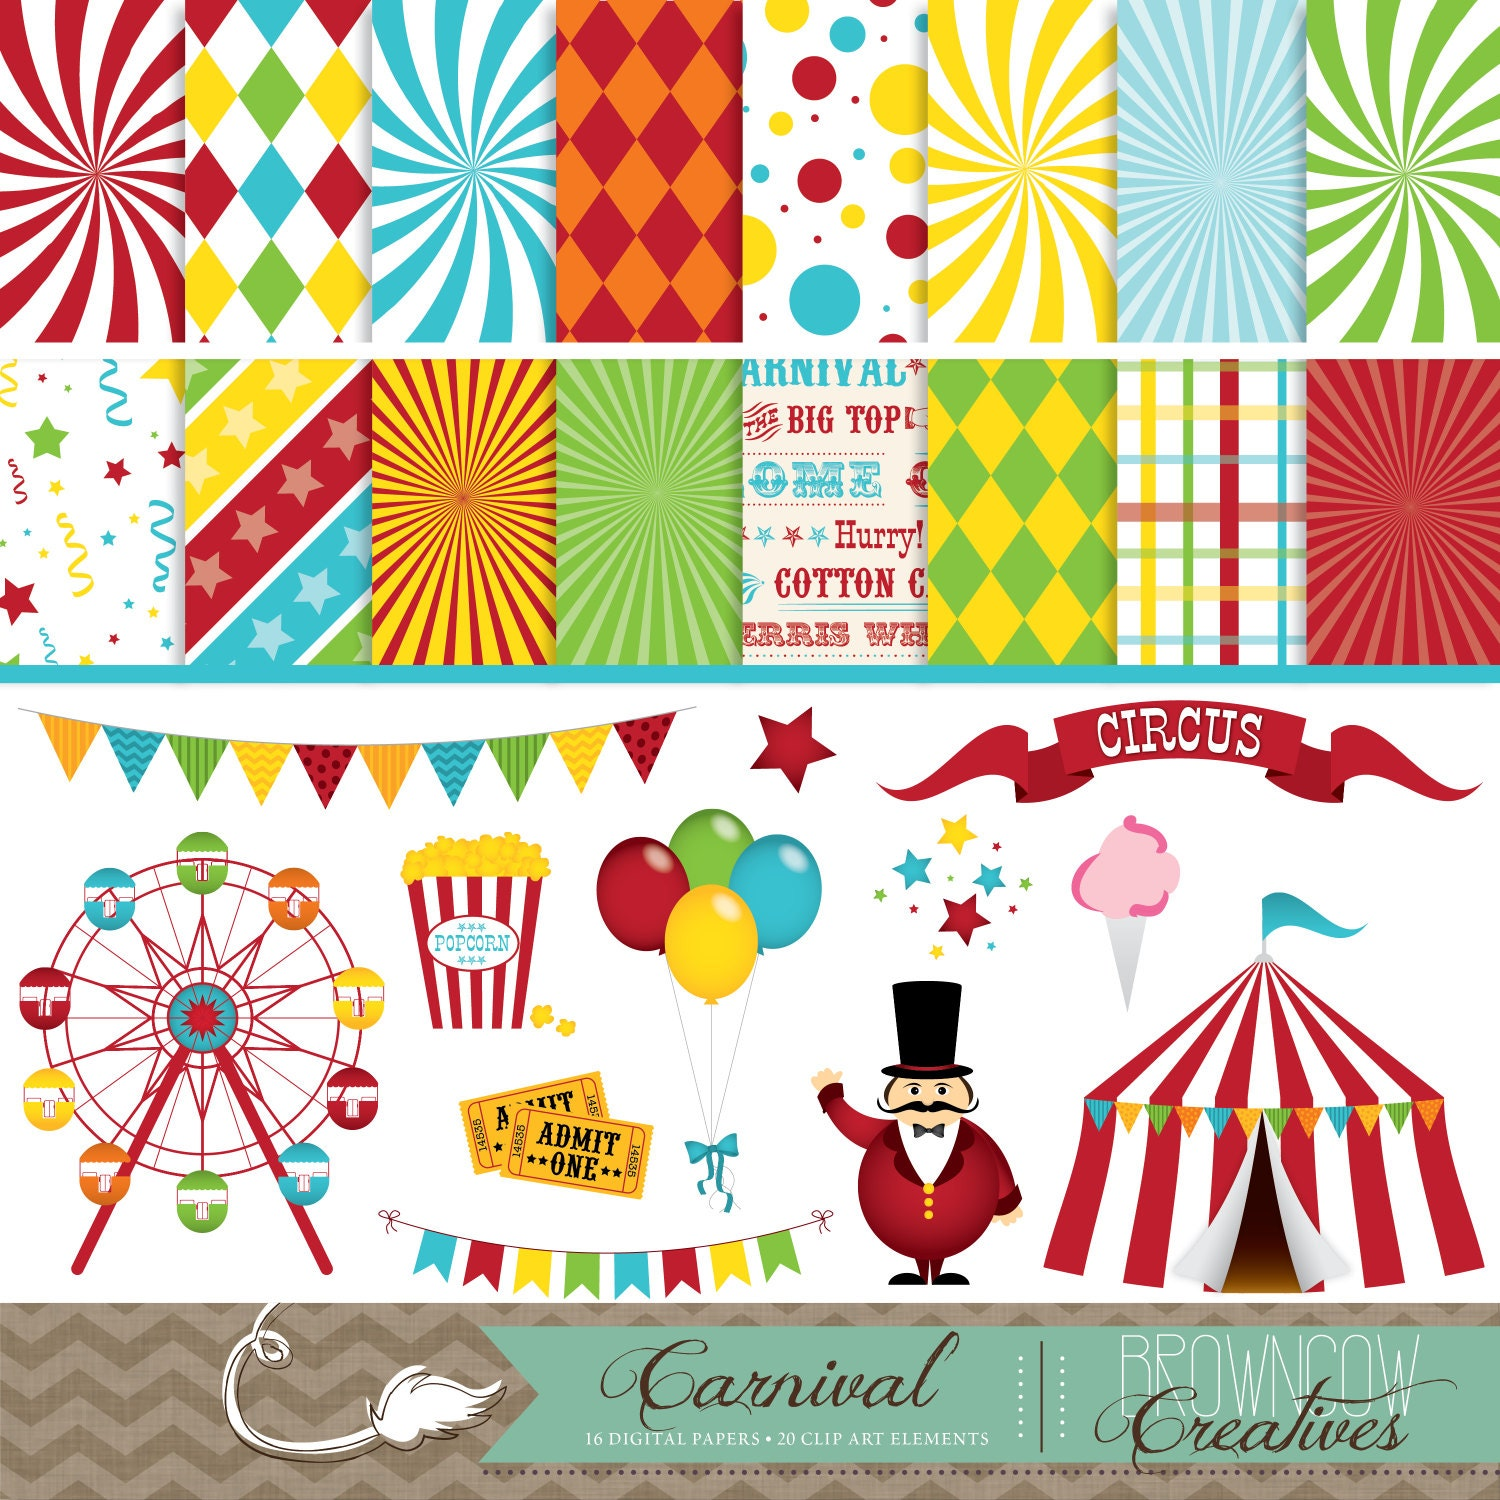 Elegant digital clip art backgrounds intended for your reference